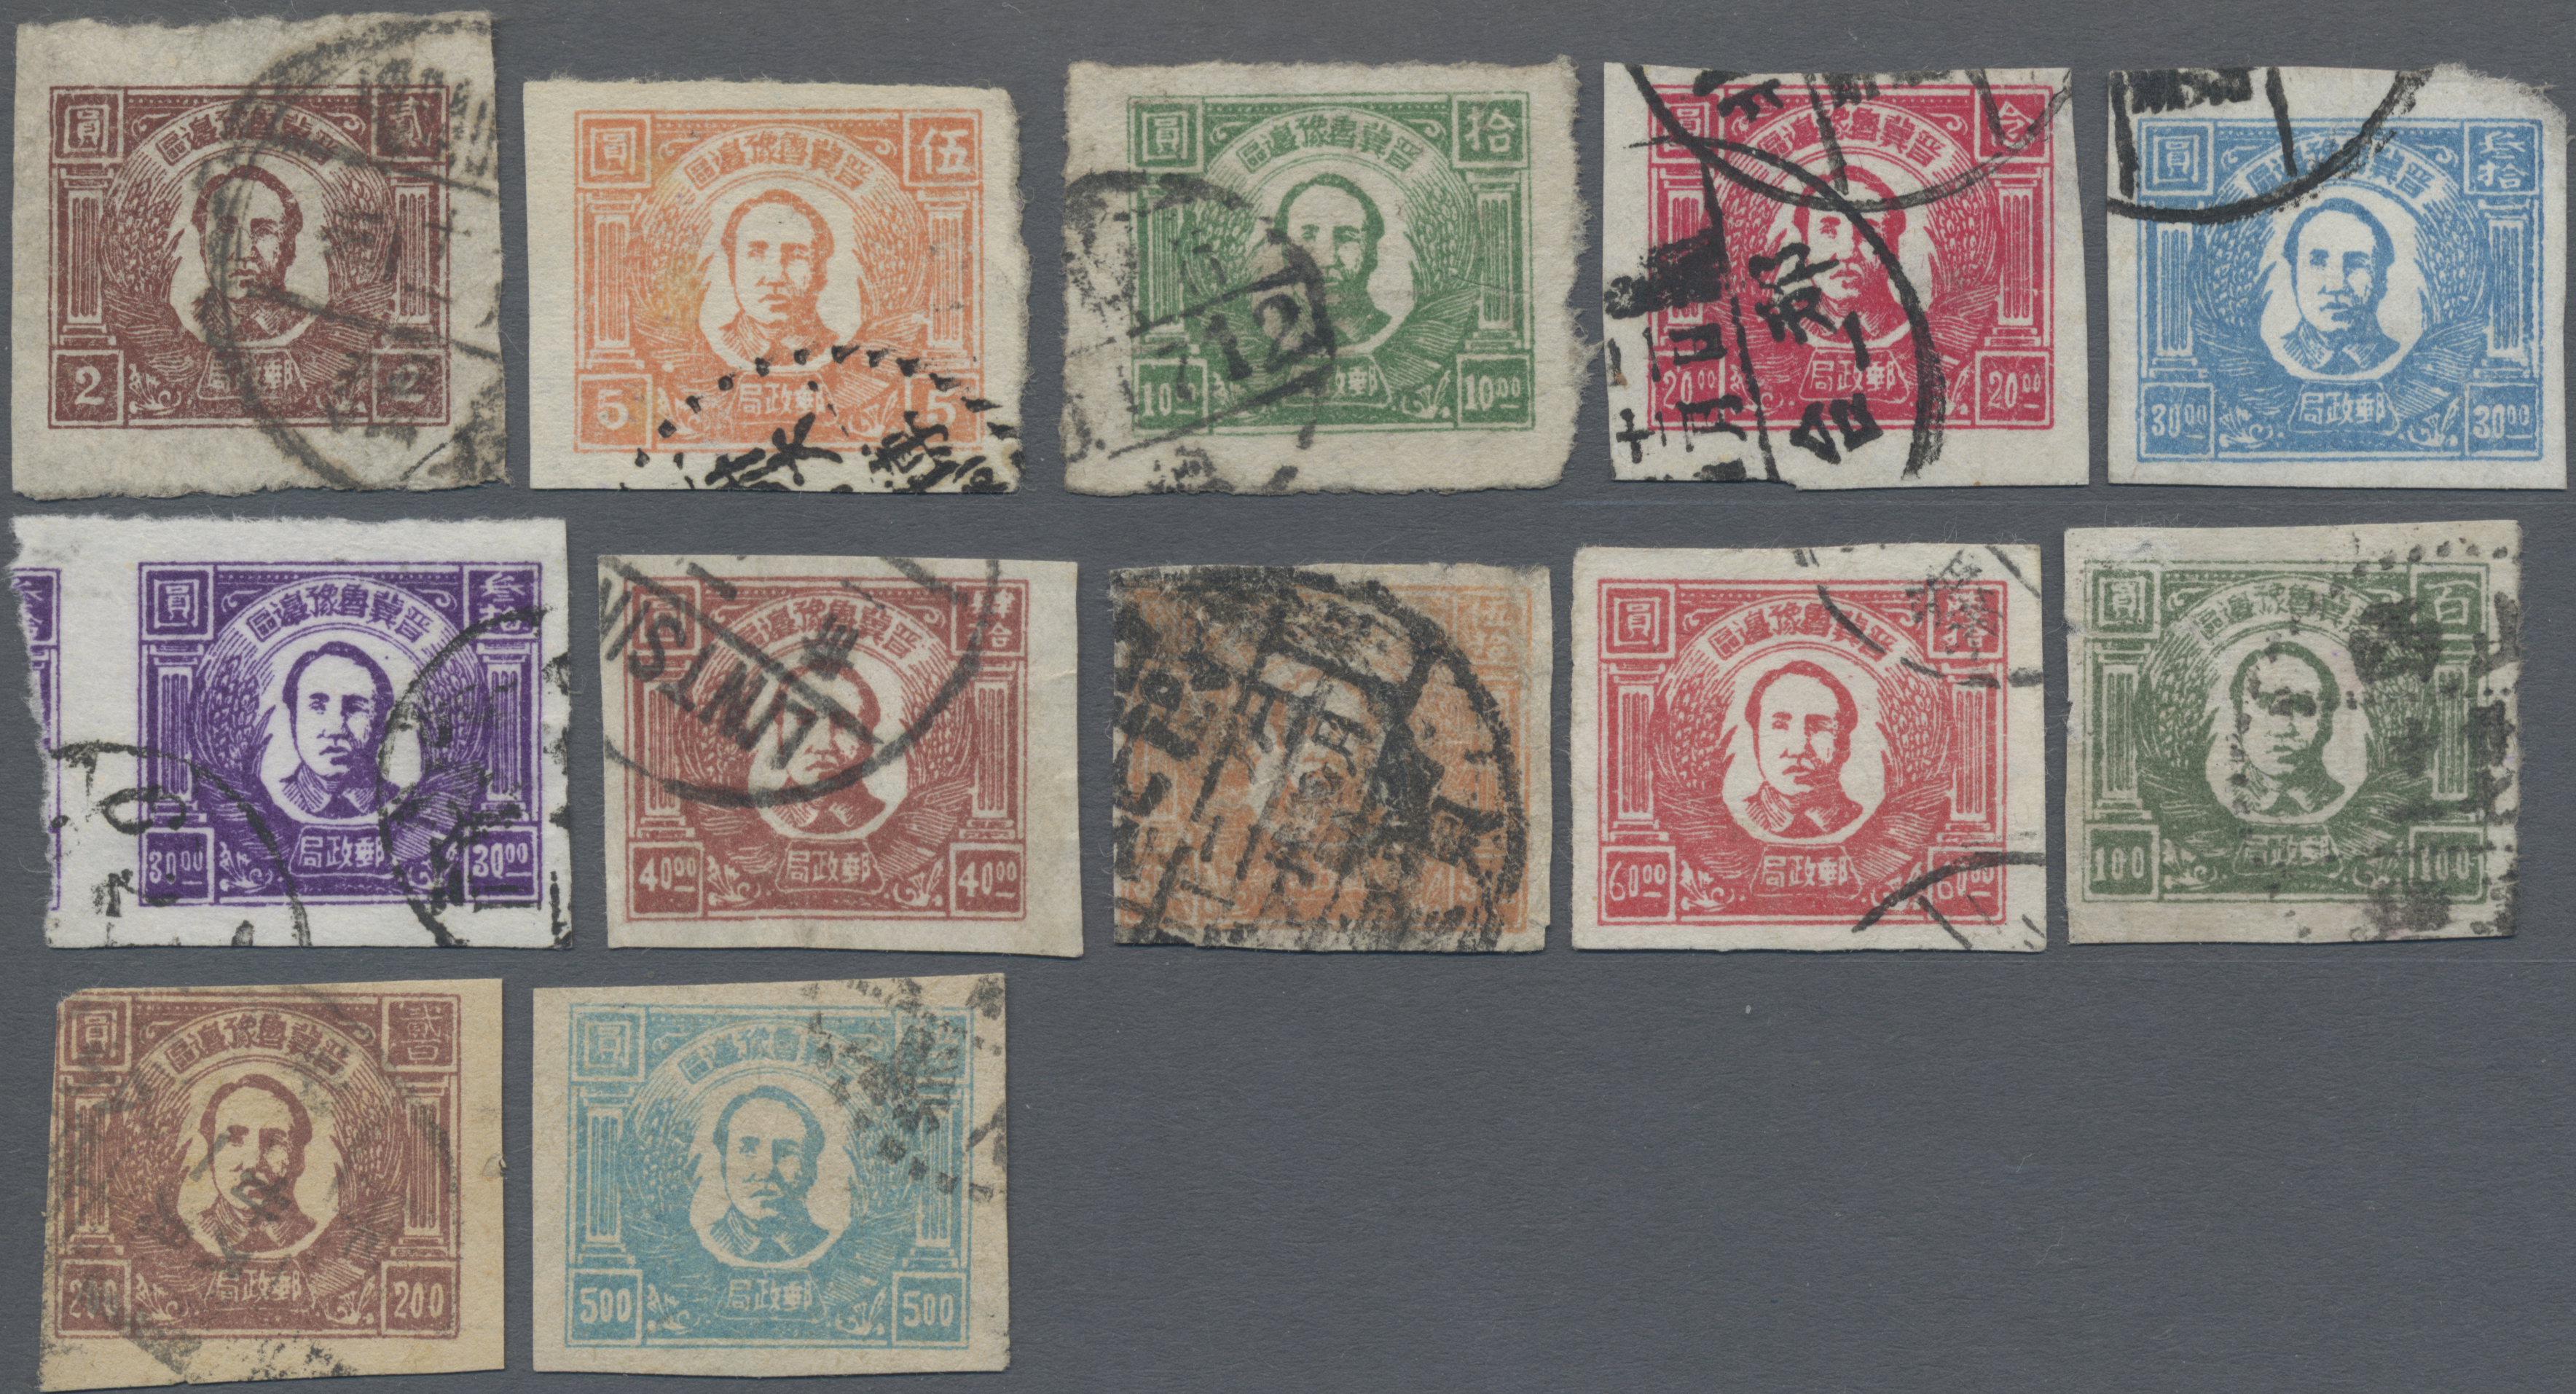 Lot 05523 - China - Volksrepublik - Provinzen  -  Auktionshaus Christoph Gärtner GmbH & Co. KG Sale #45- Special Auction China